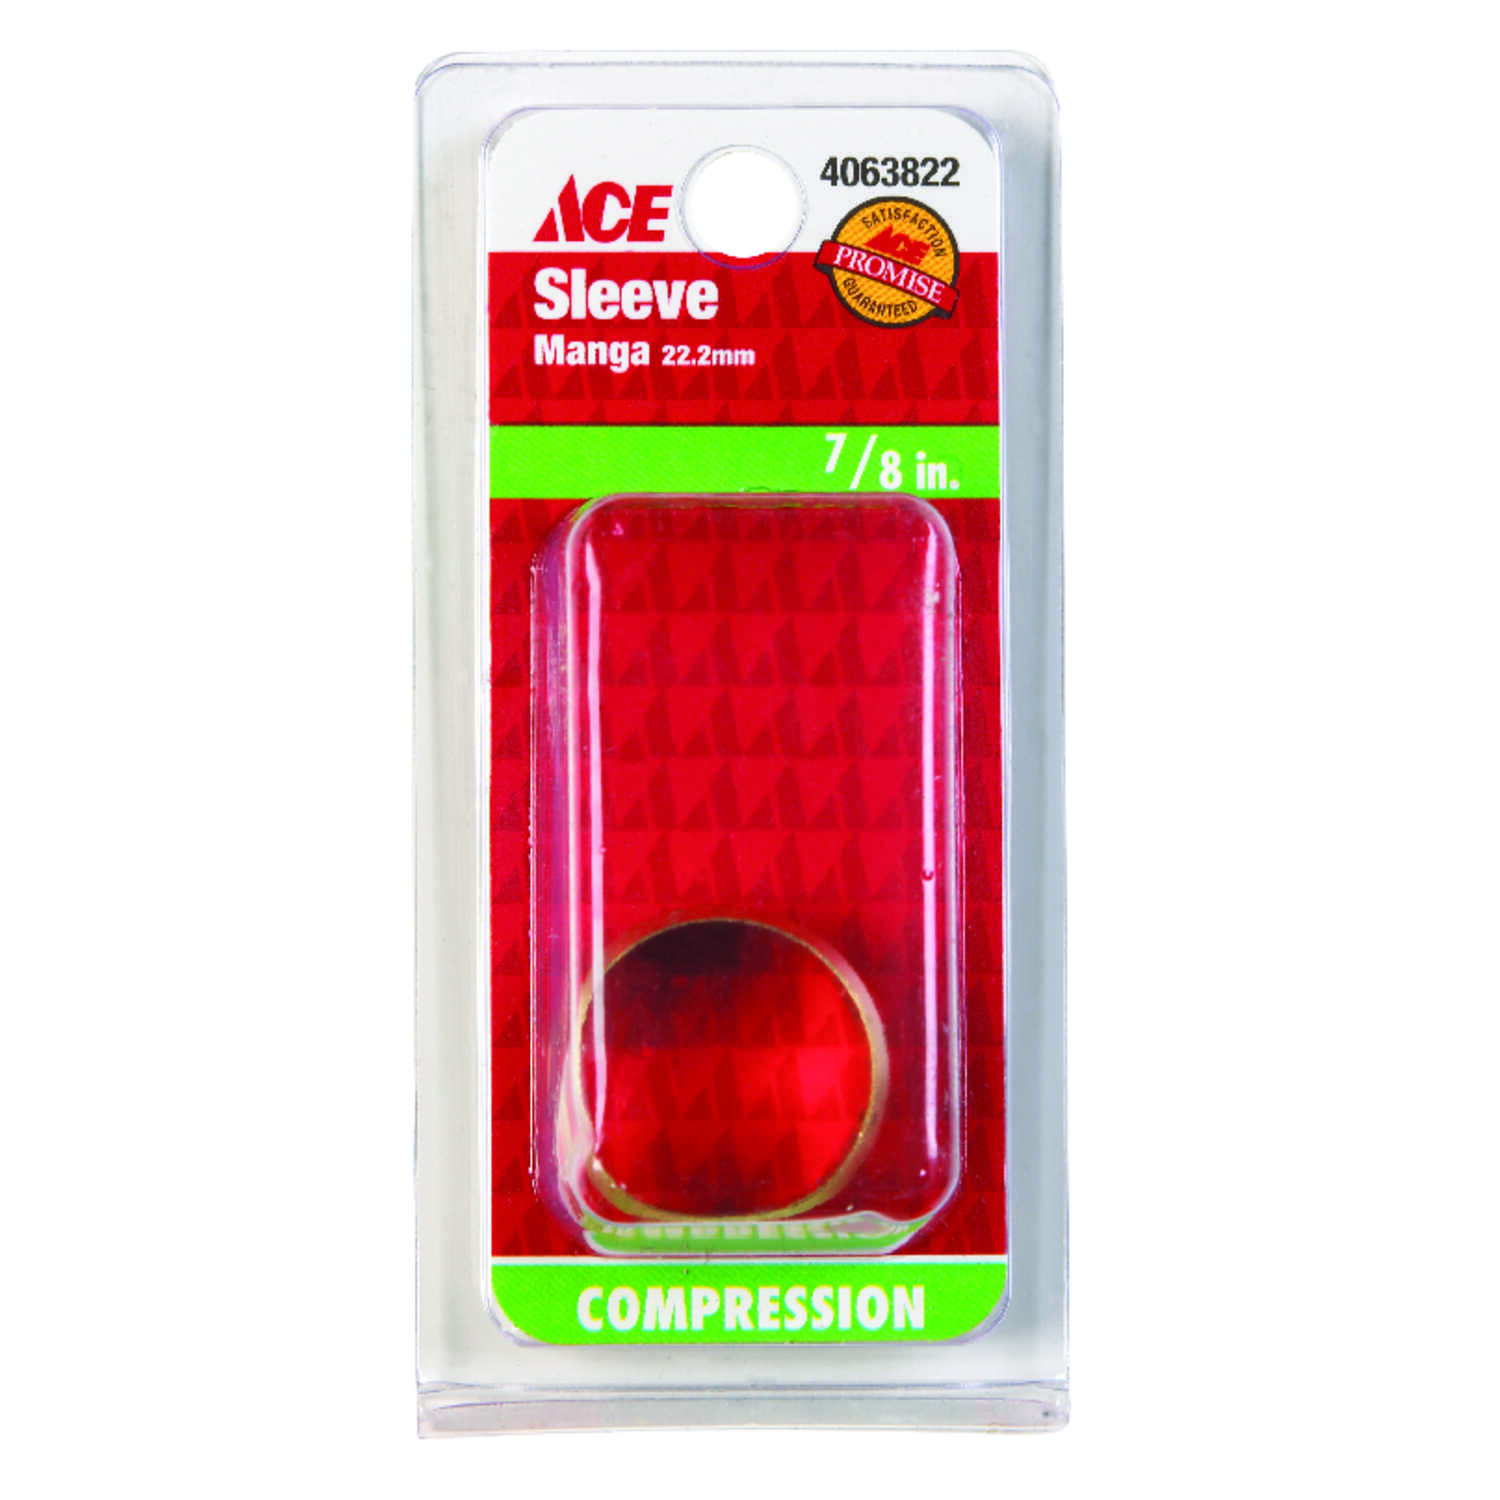 Ace  7/8 in. Compression   Brass  Compression Sleeve